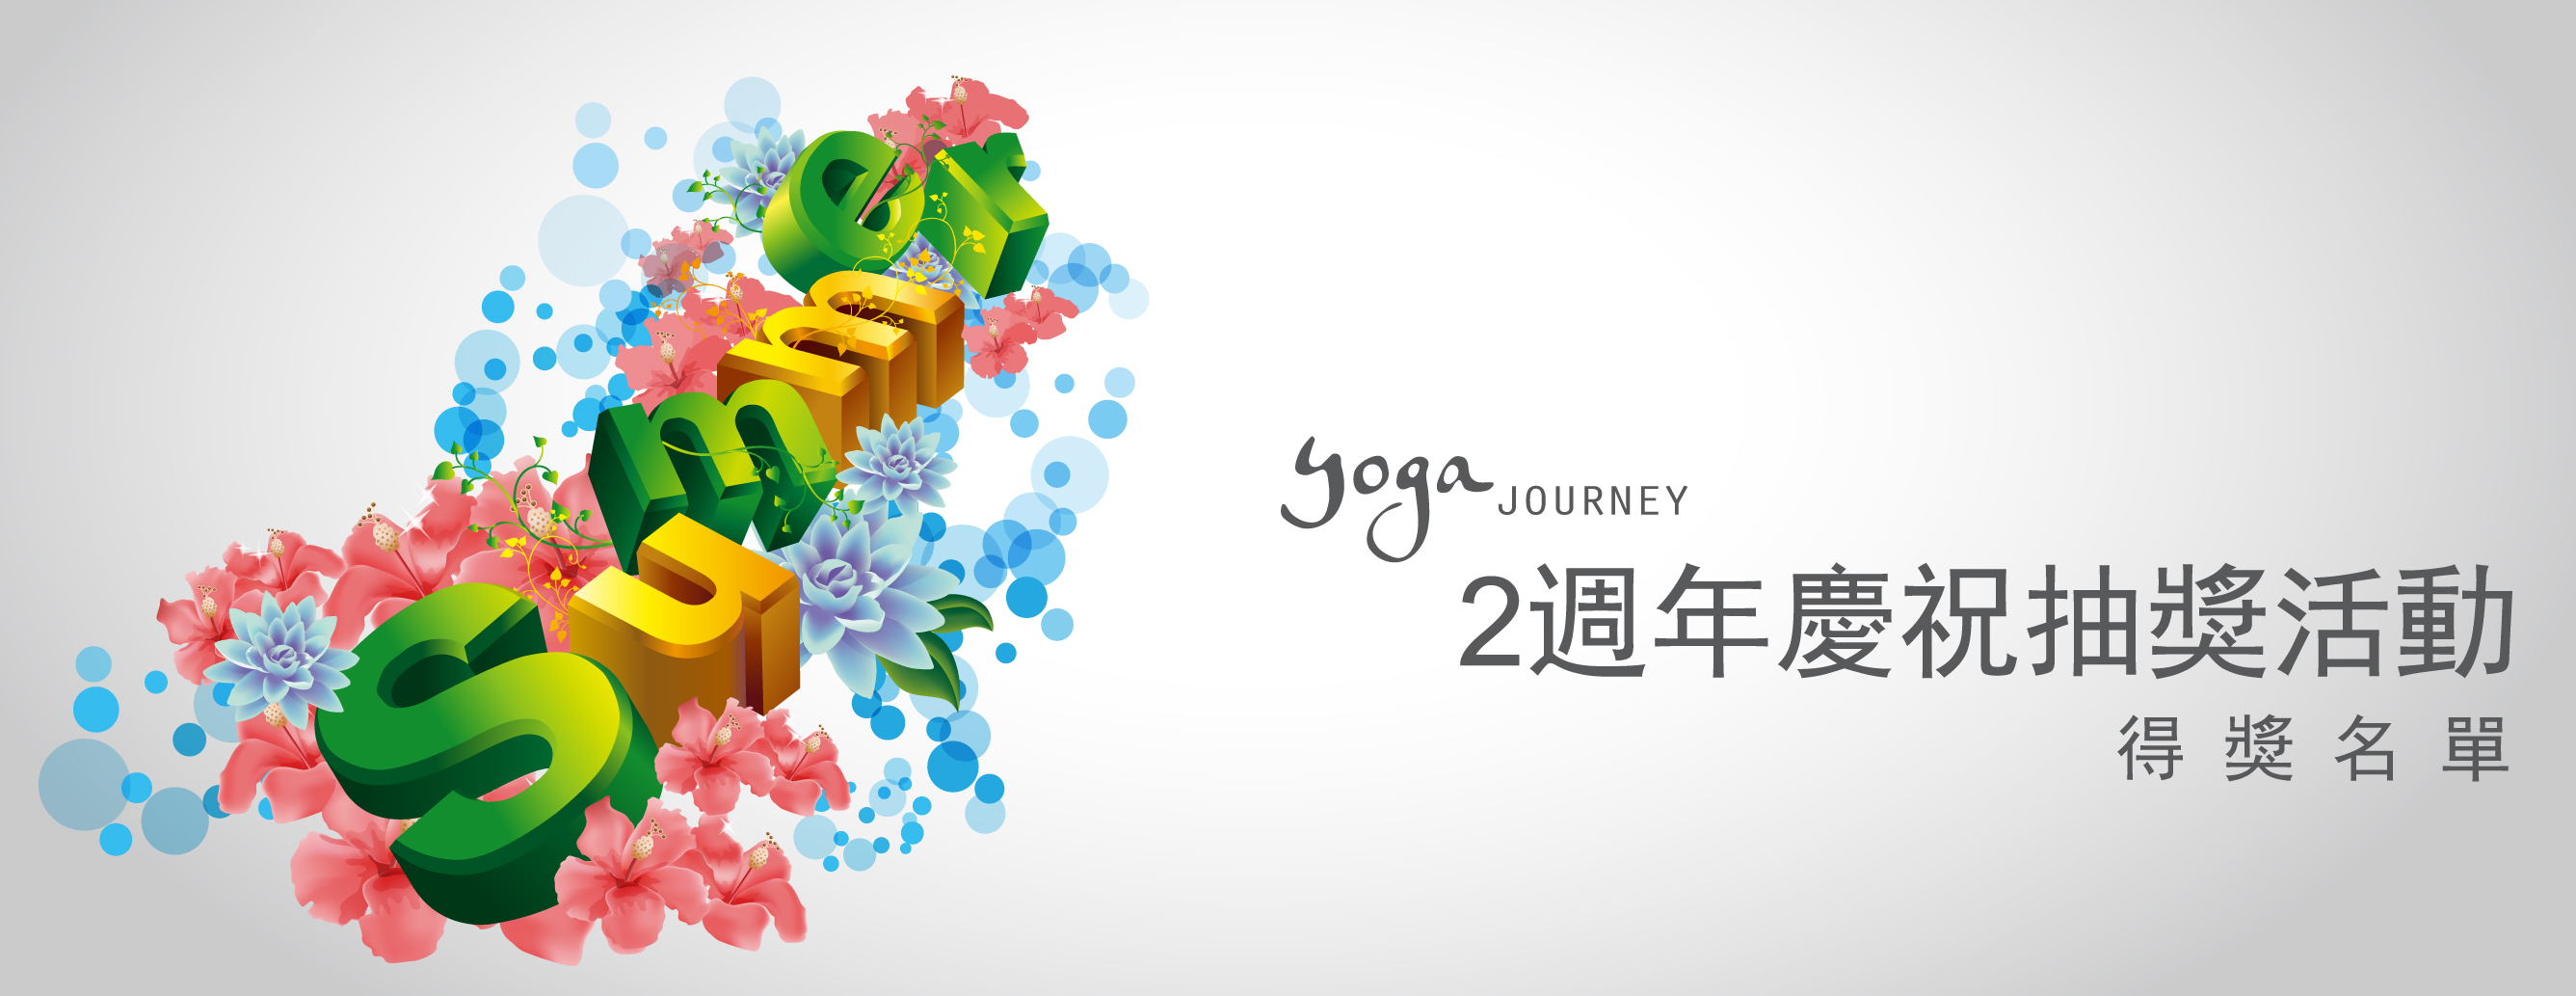 yoga journey party